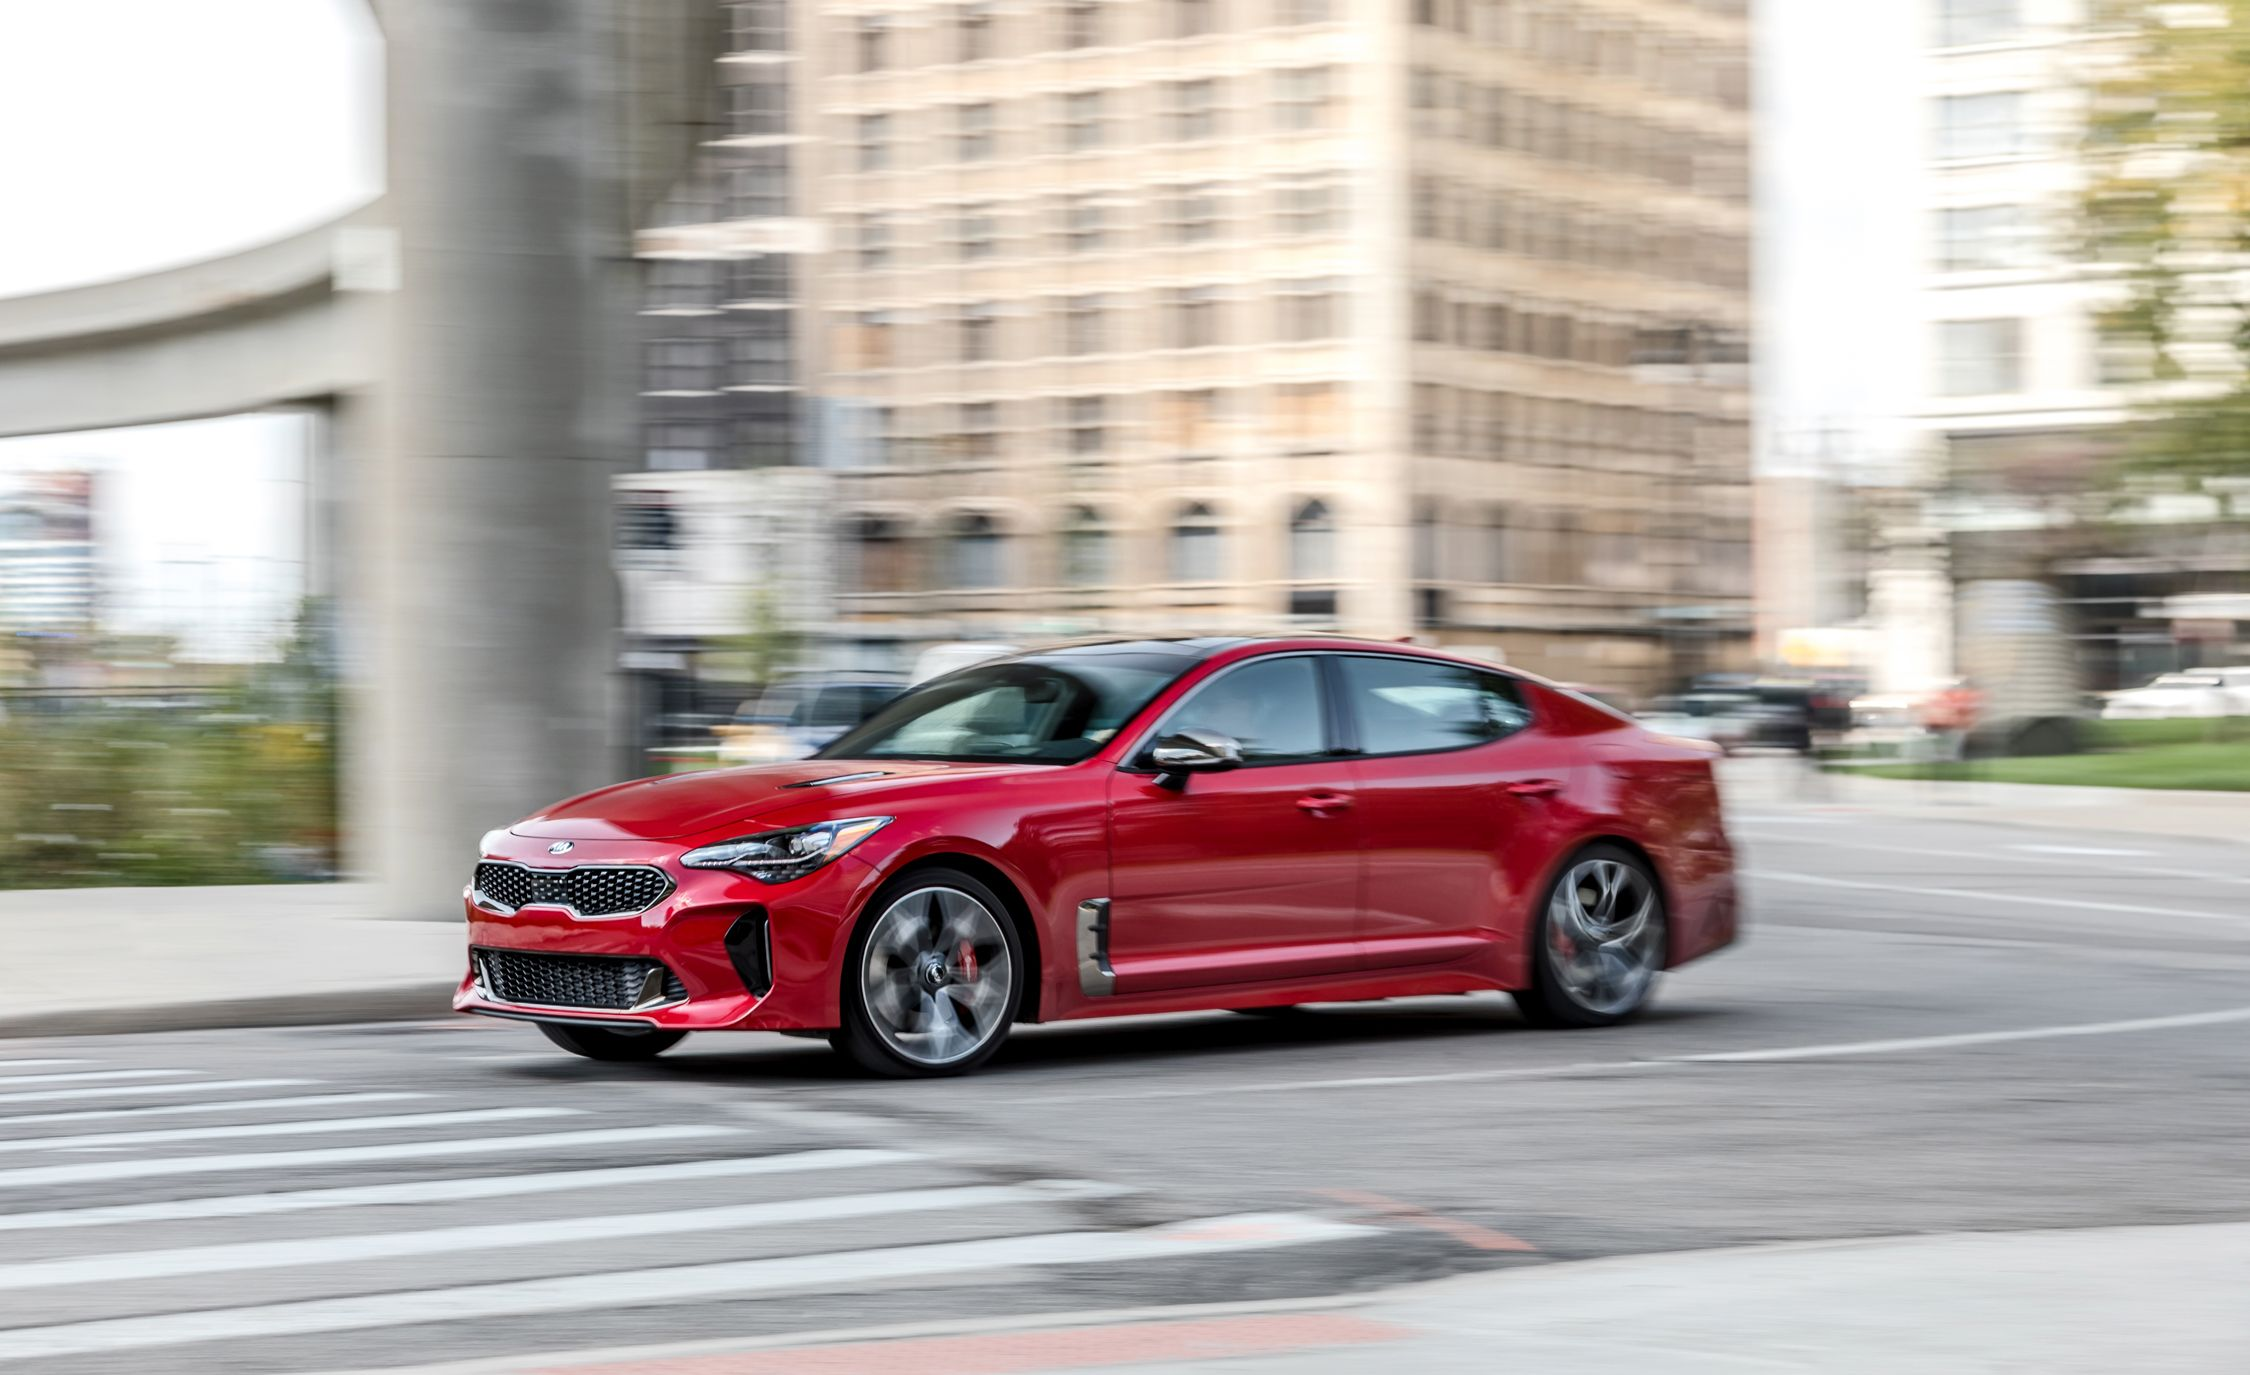 Kia Stinger Reviews | Kia Stinger Price, Photos, and Specs | Car ...